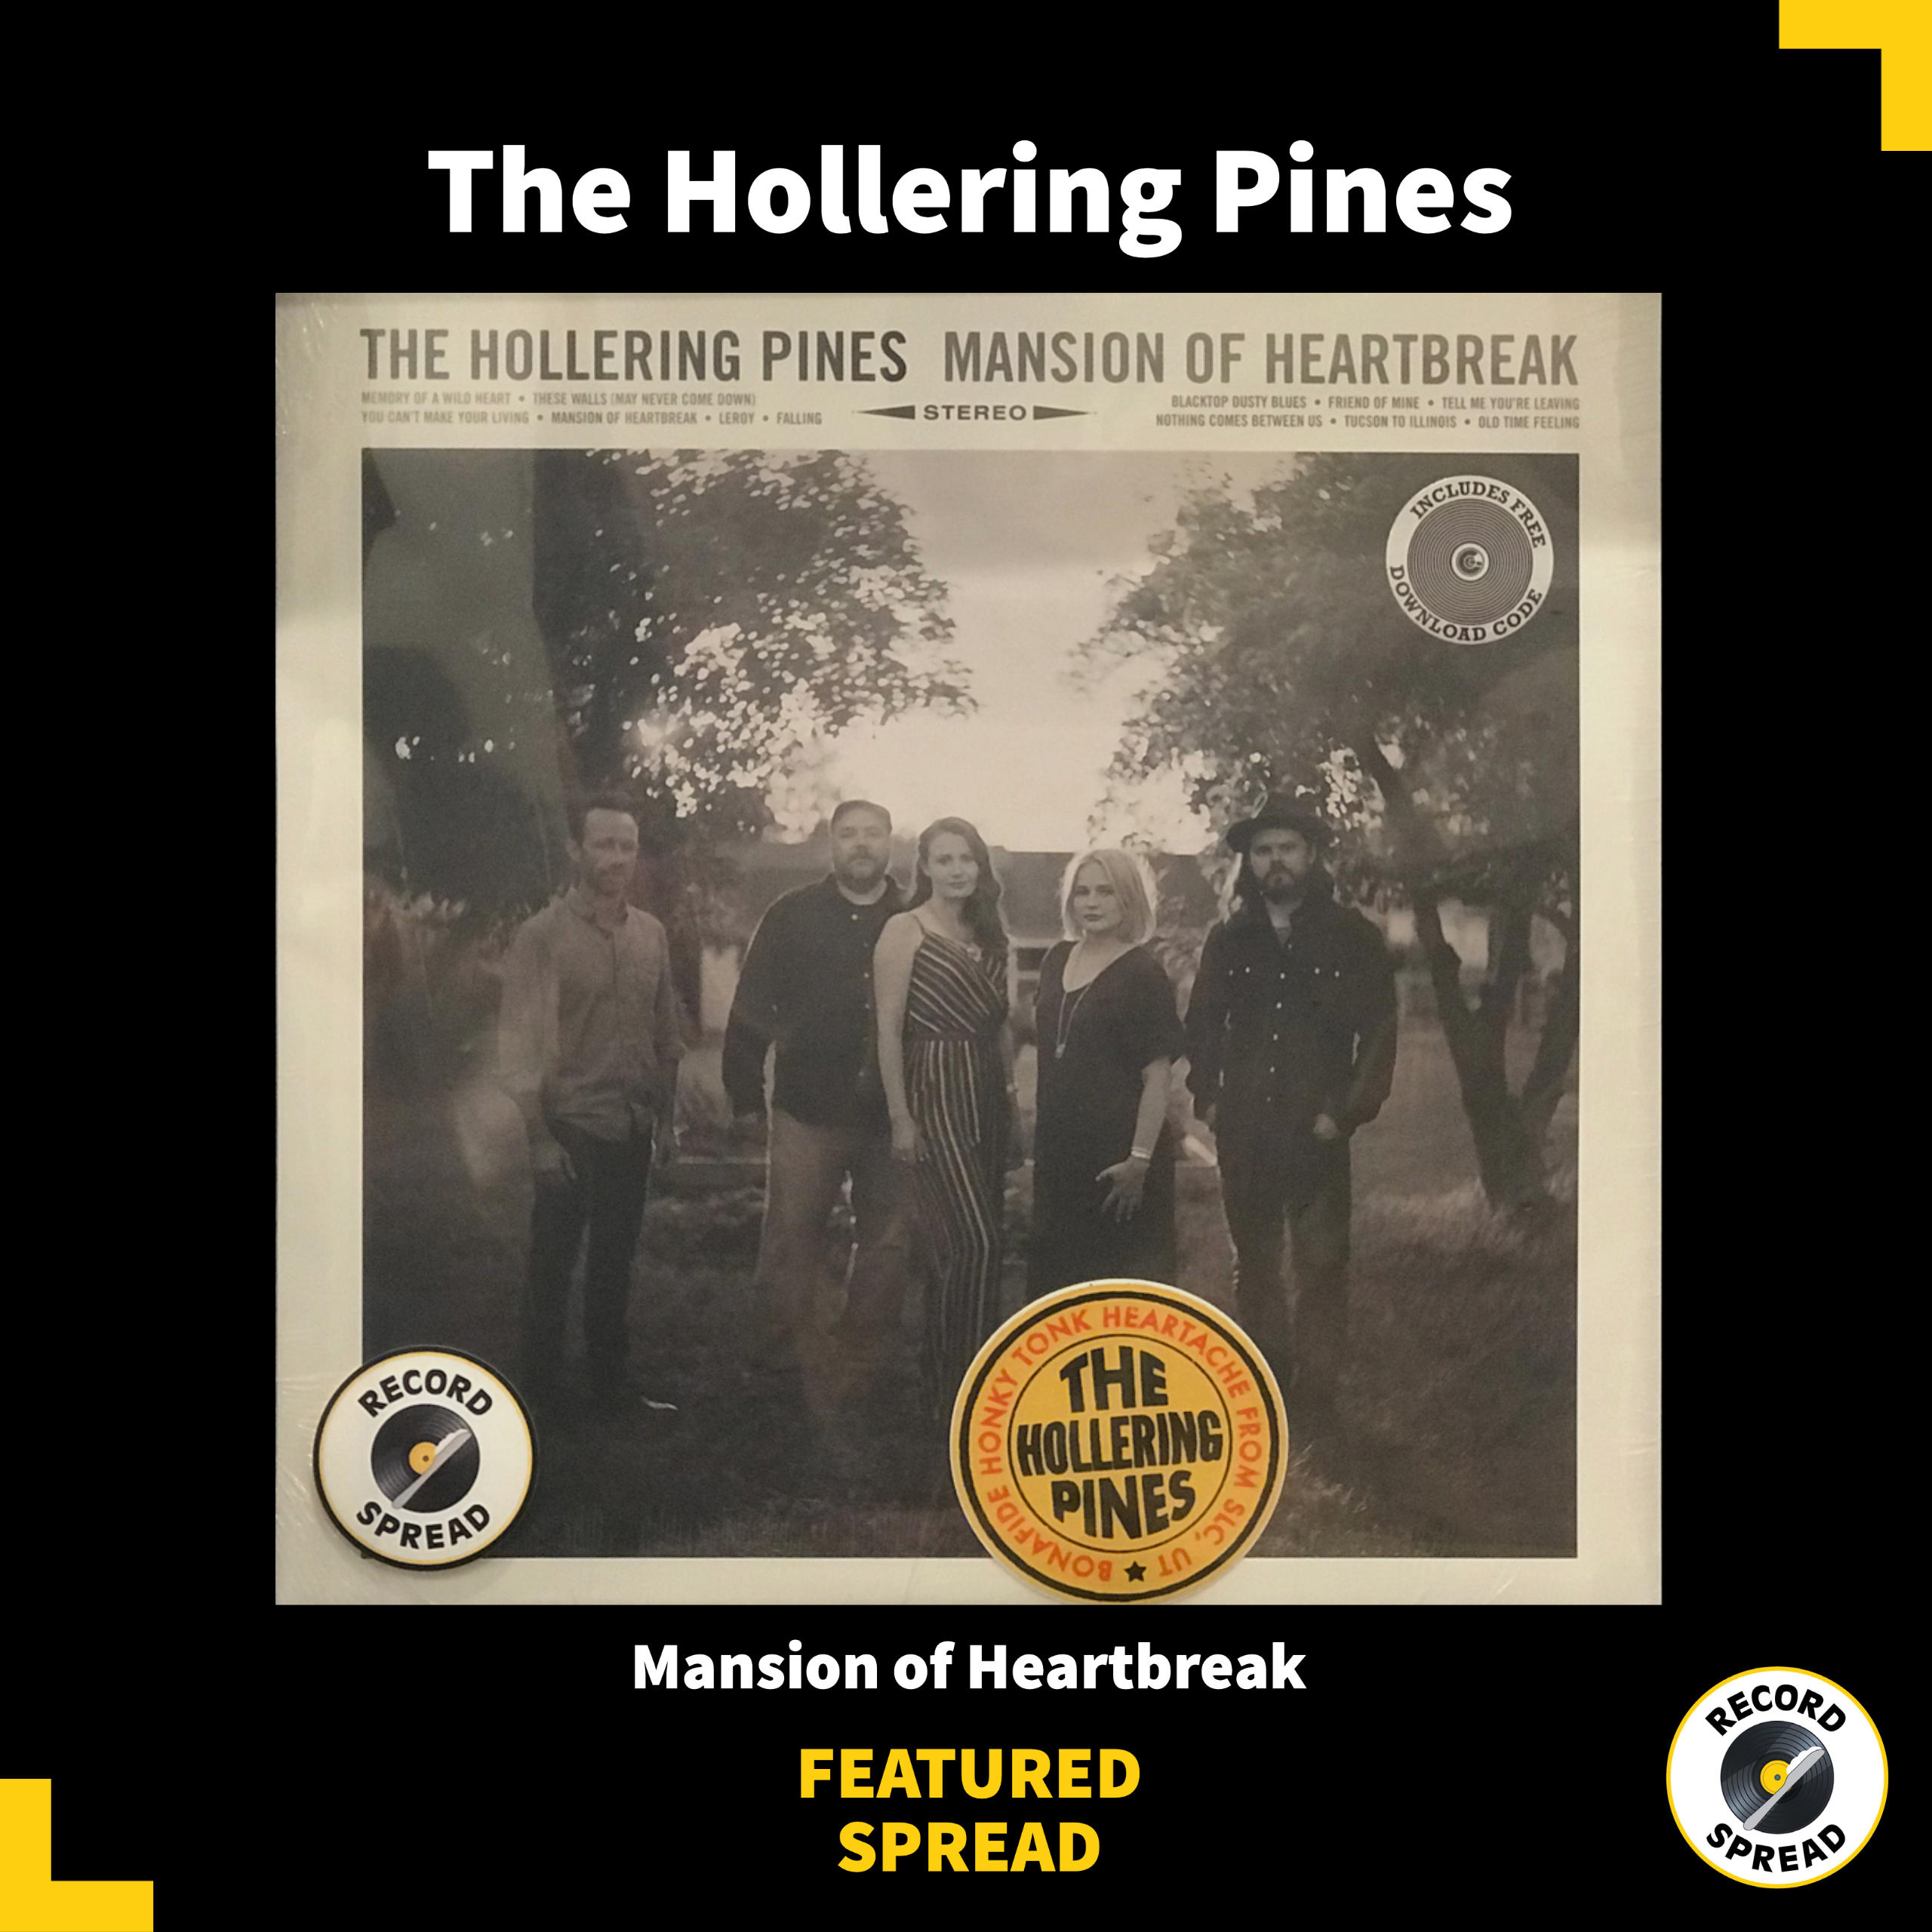 The Hollering Pines